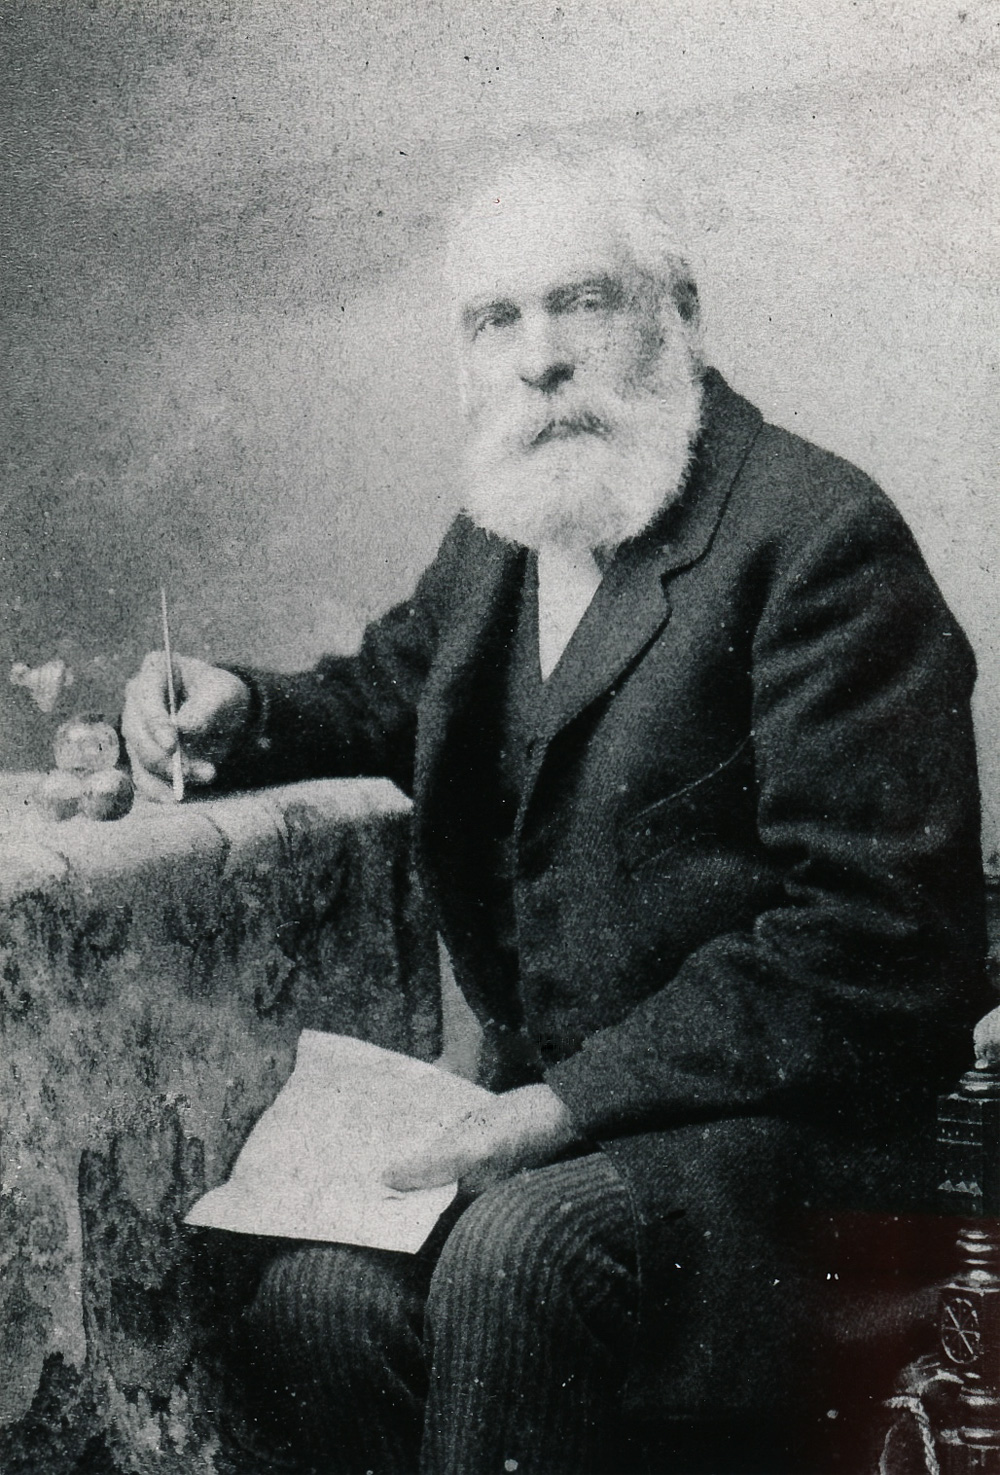 From the Glenbow Archives (Image: A period photograph circa 1890 of a seated older man with white hair and full beard holding a pen in his right hand a sheaf of papers in his left. He wears a tweed jacket, vest and striped trousers.)